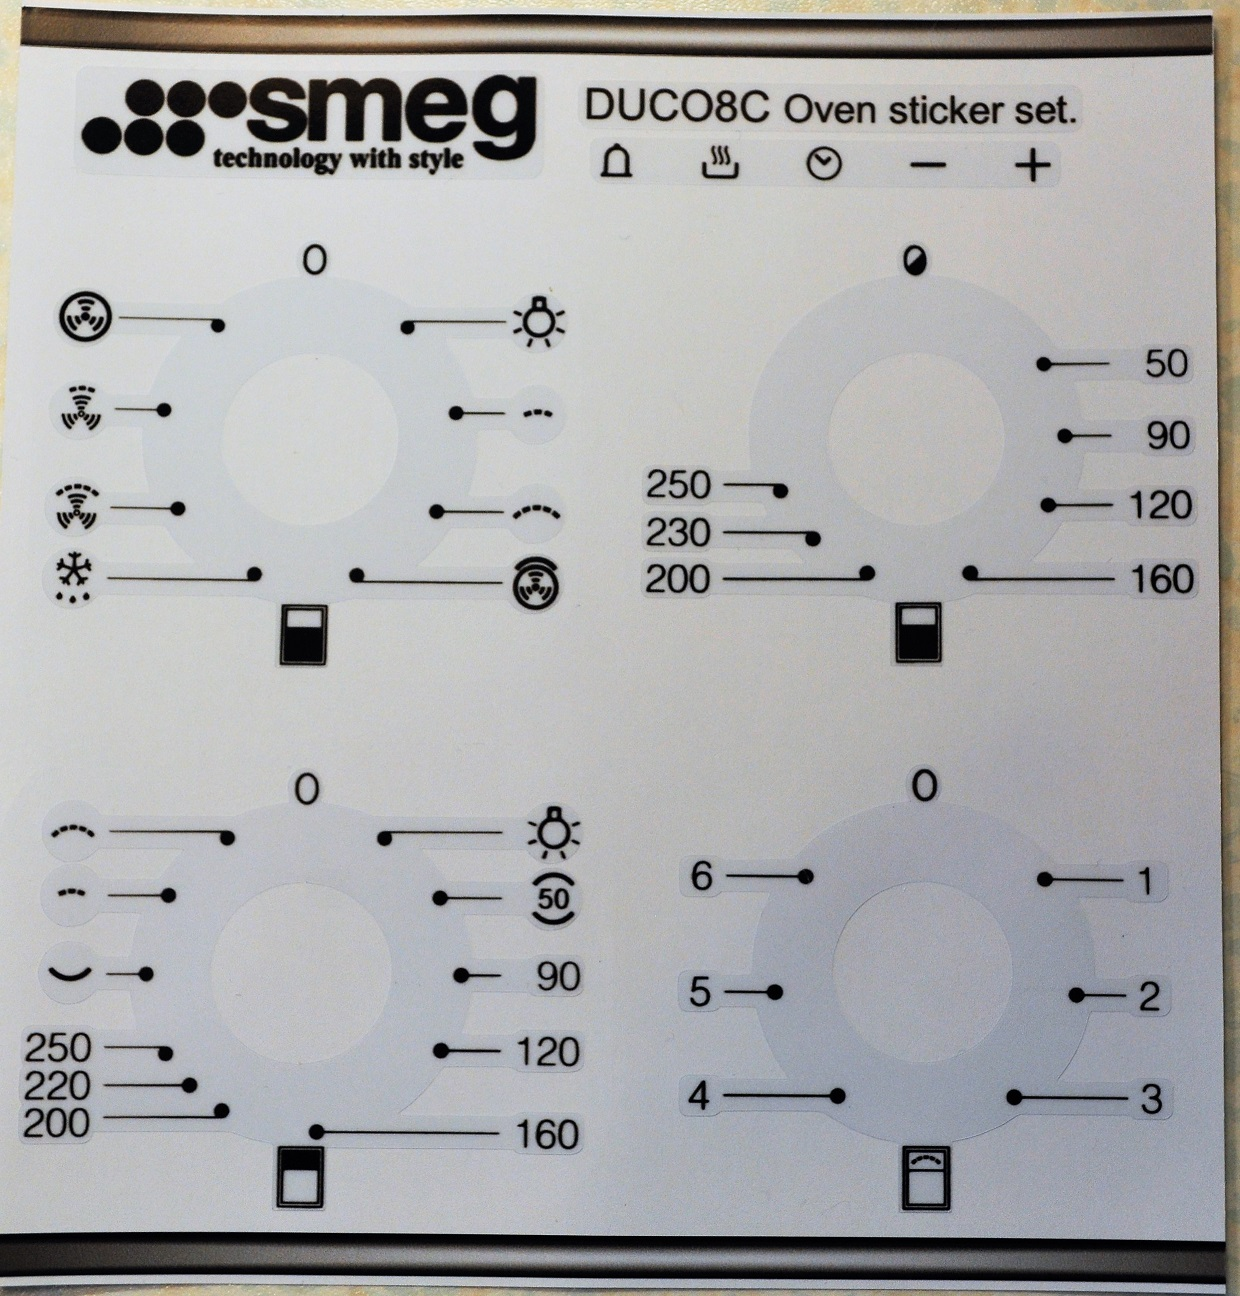 Smeg DUCO8C oven panel decal stickers, may suit other models.